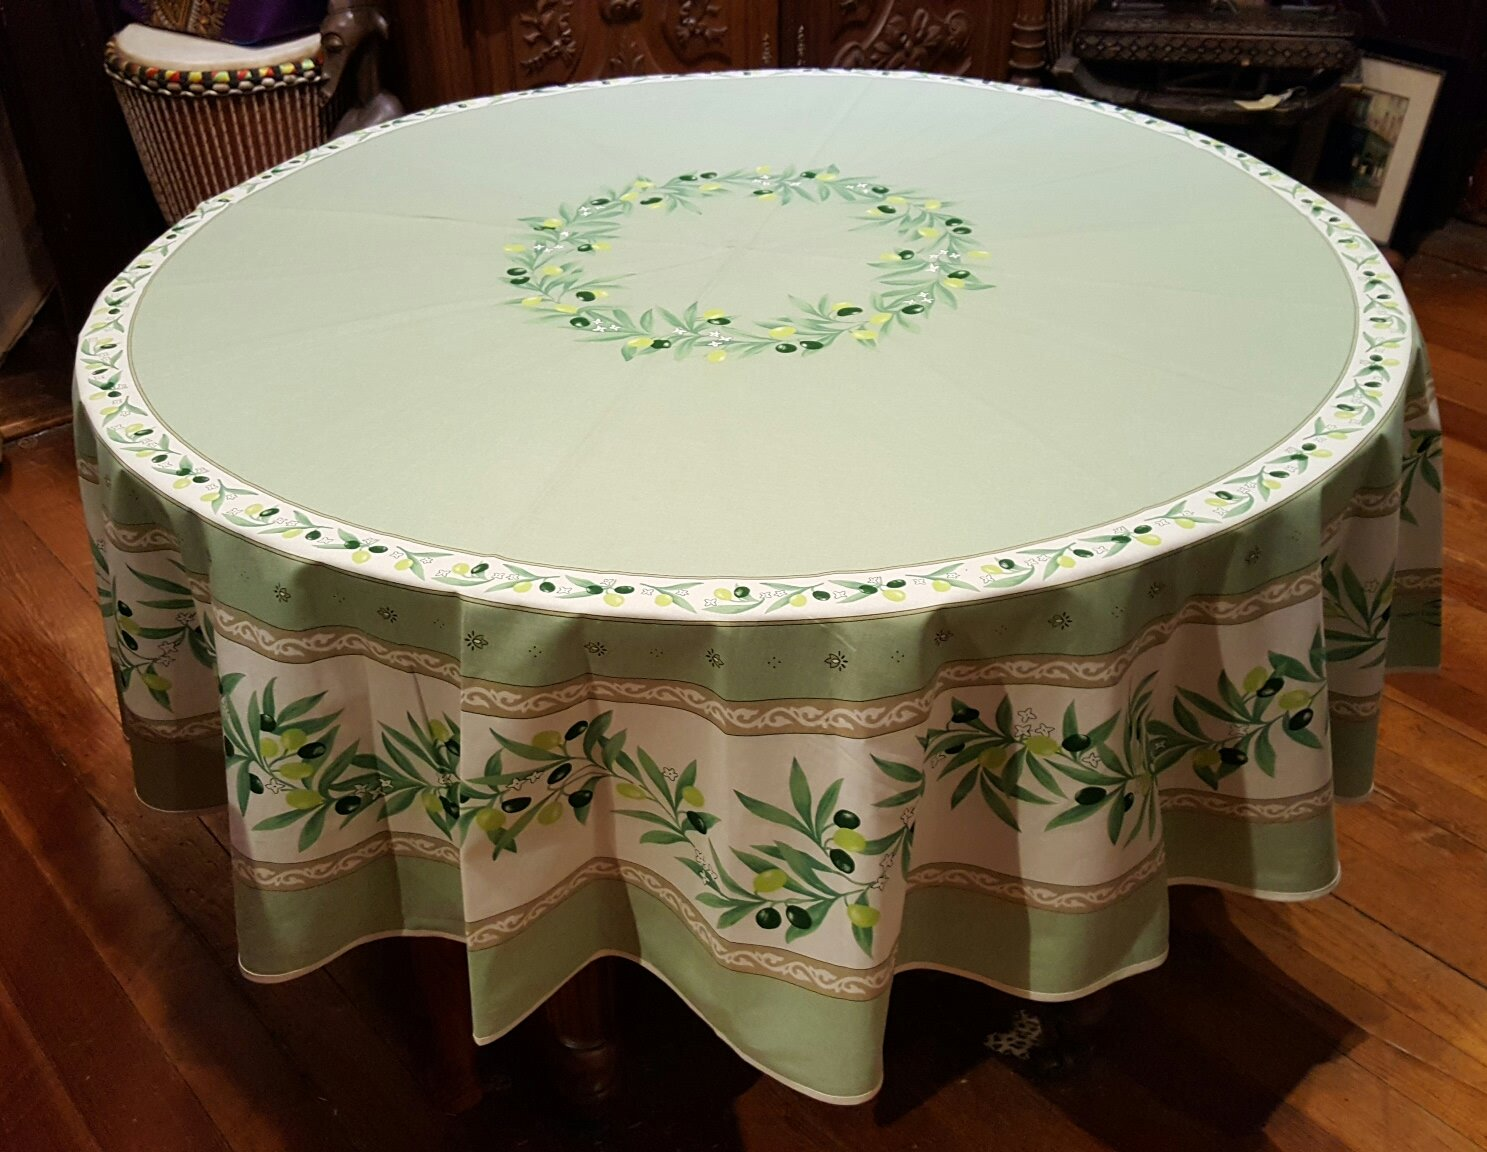 70 French Acrylic-Coated Round Tablecloth Ramatuelle (Green)